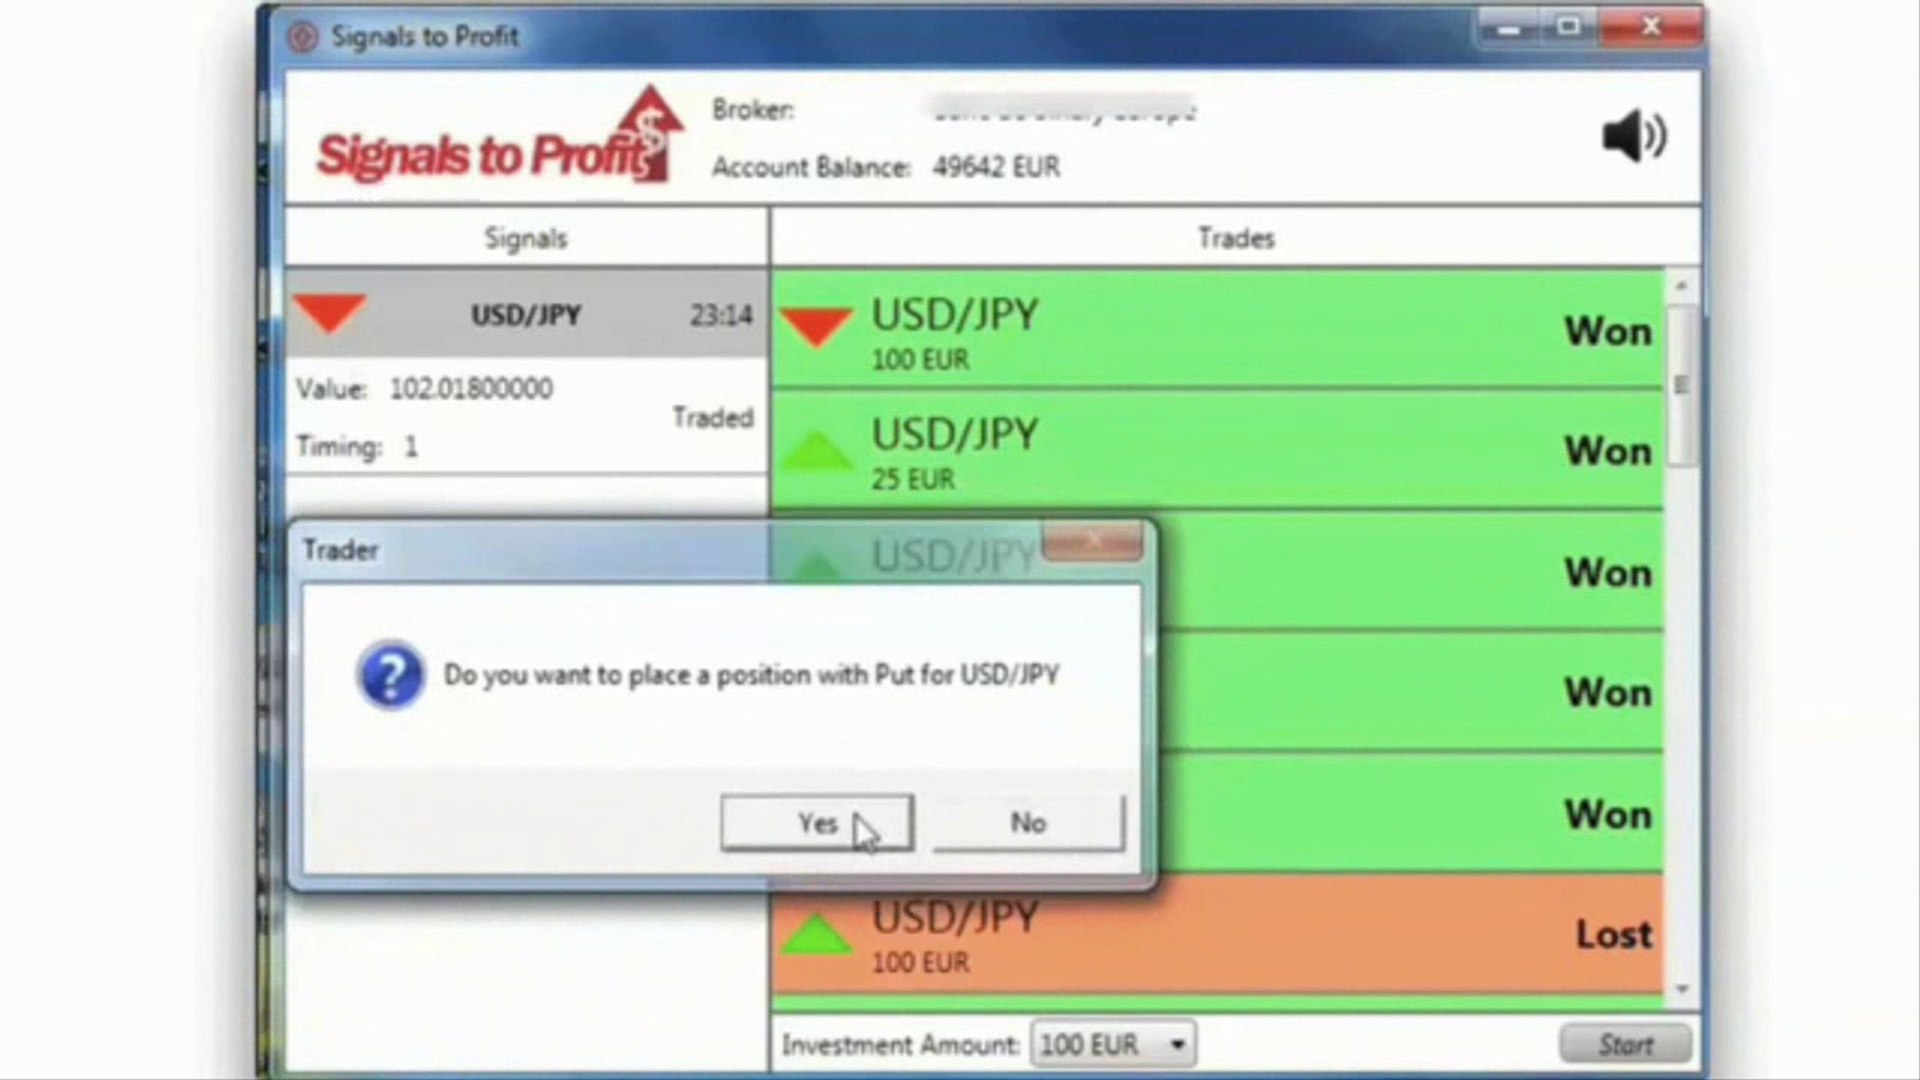 Signals To Profit Review - Does Signals To Profit Software Works